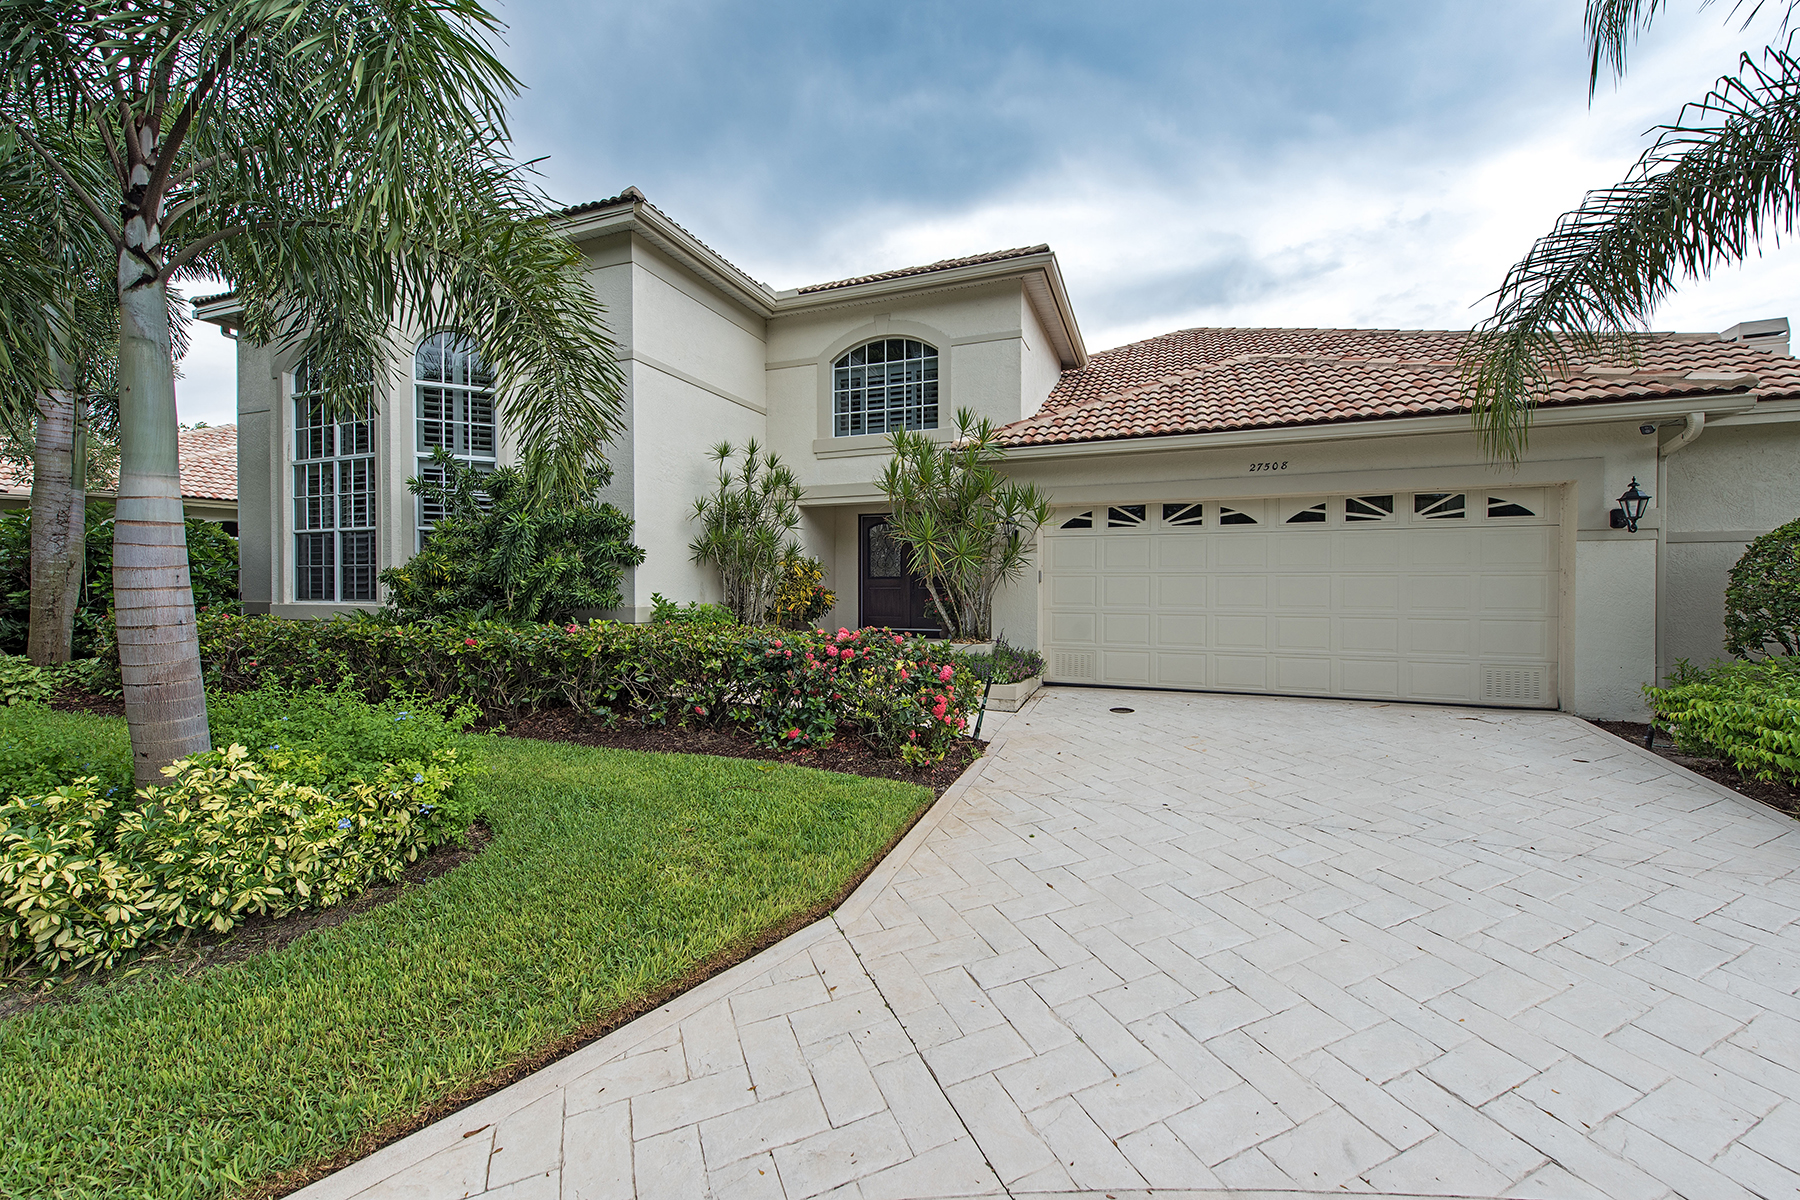 Casa Unifamiliar por un Venta en BONITA BAY - THE ANCHORAGE 27508 Riverbank Dr Bonita Springs, Florida, 34134 Estados Unidos